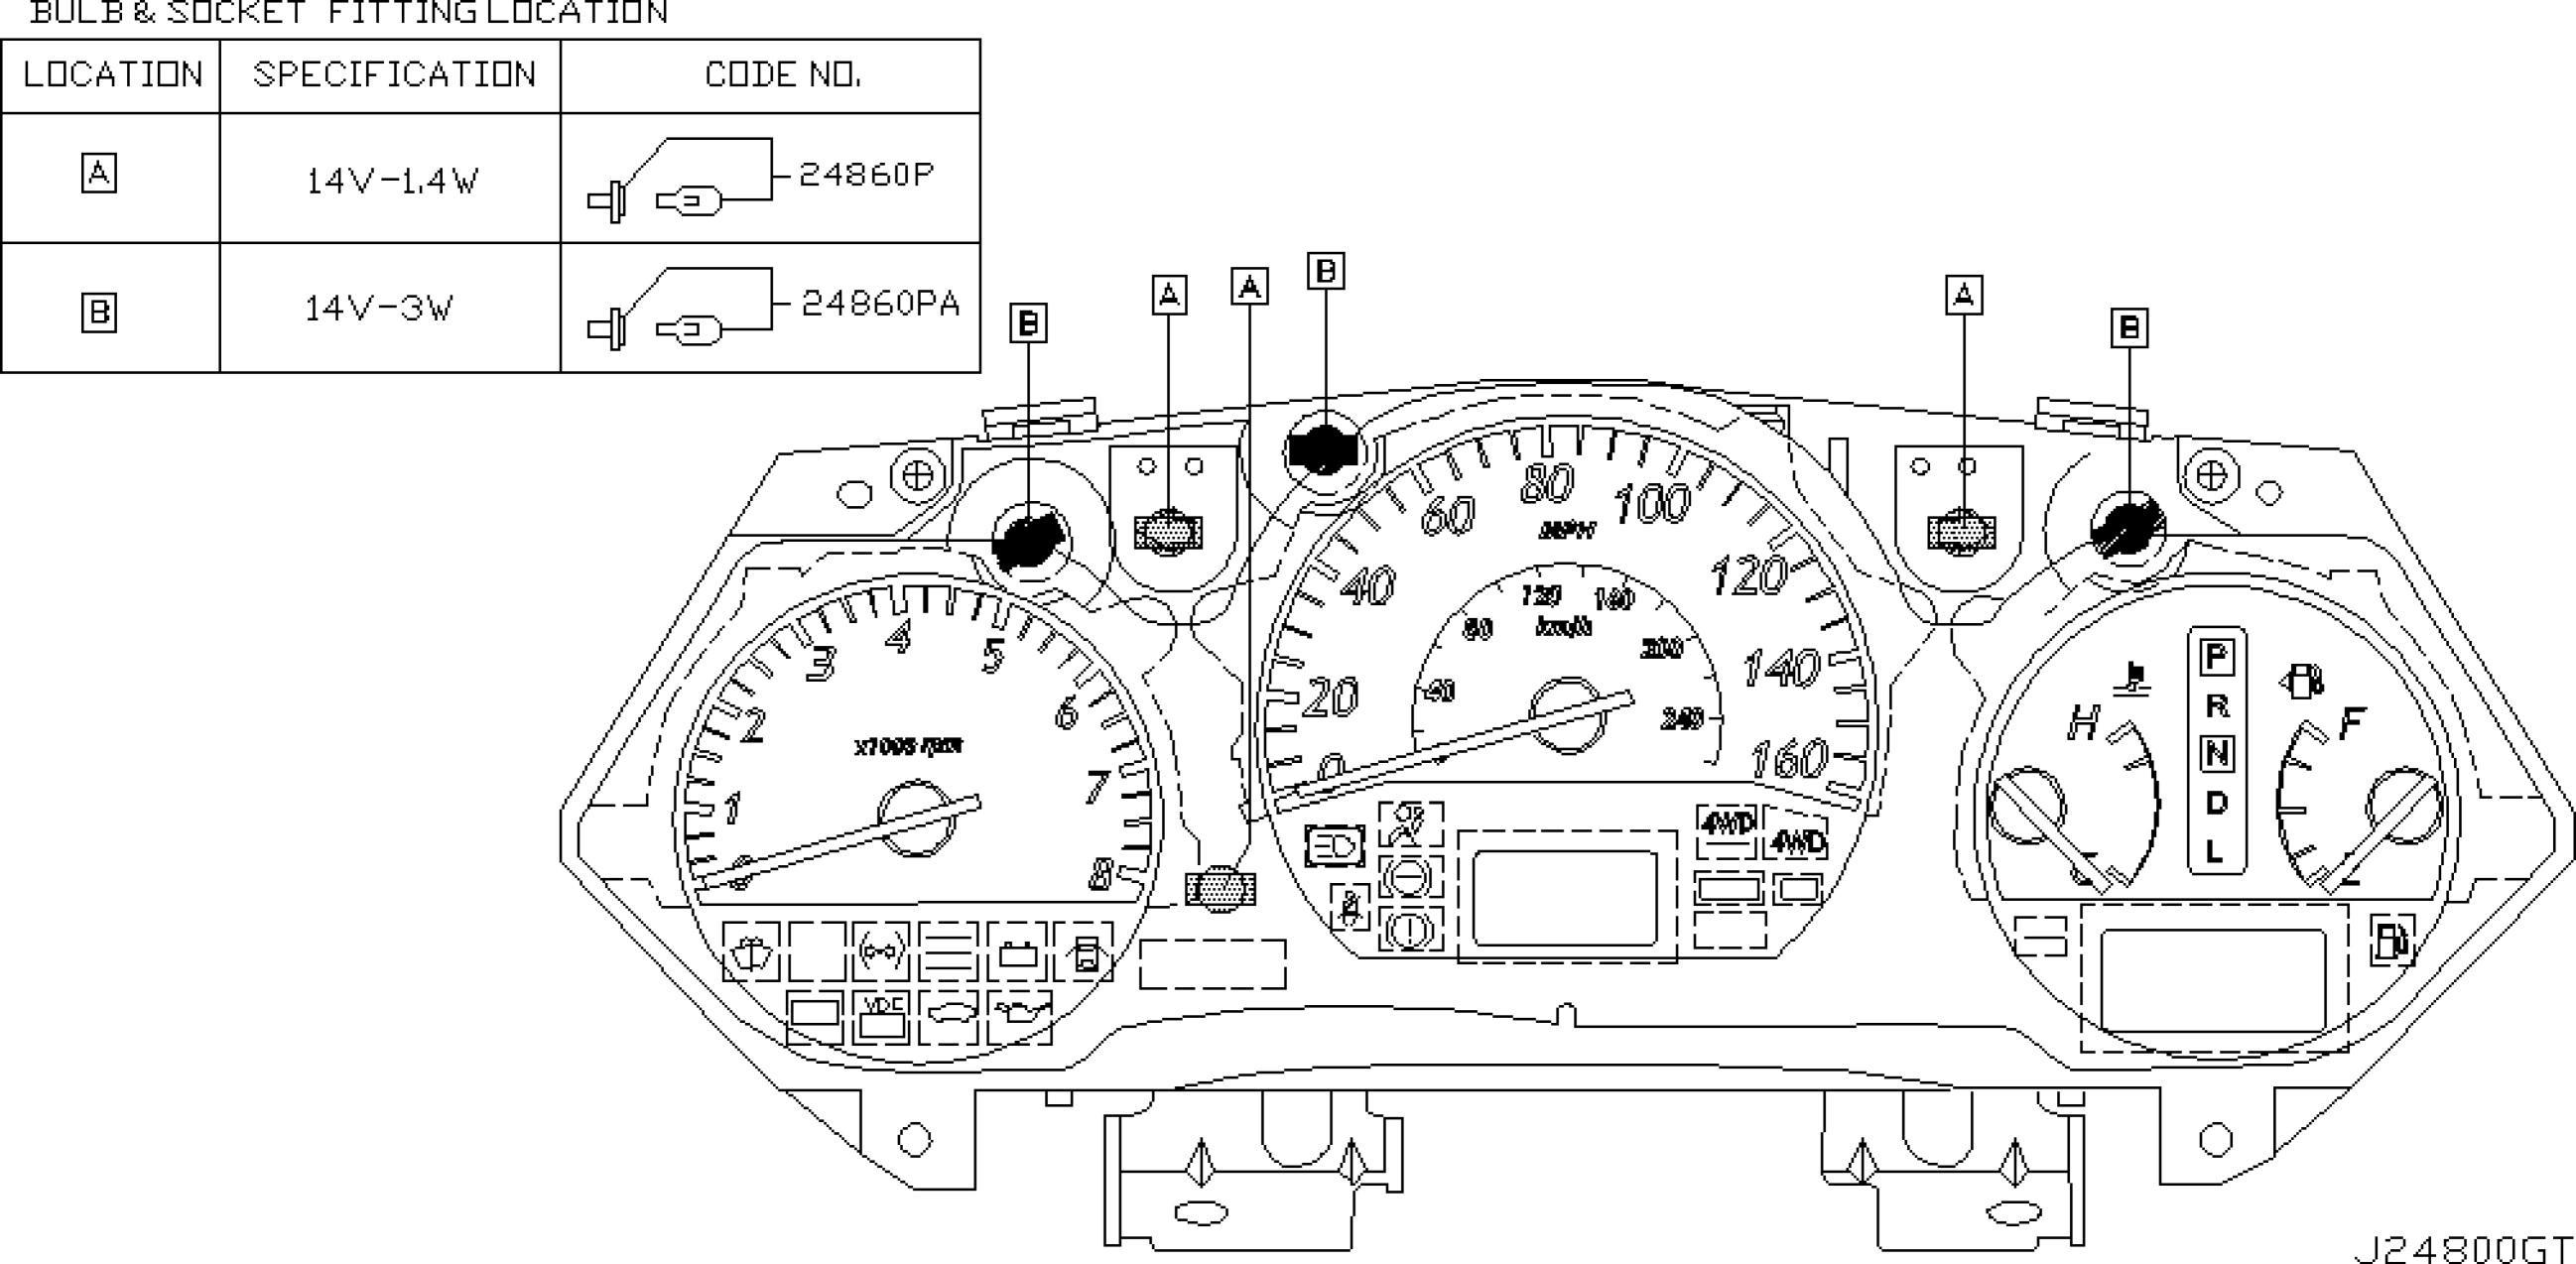 1999 Nissan Altima Engine Diagram 2007 Nissan Altima Bination Lamp  Xenontype Parts Diagram Car Of 1999